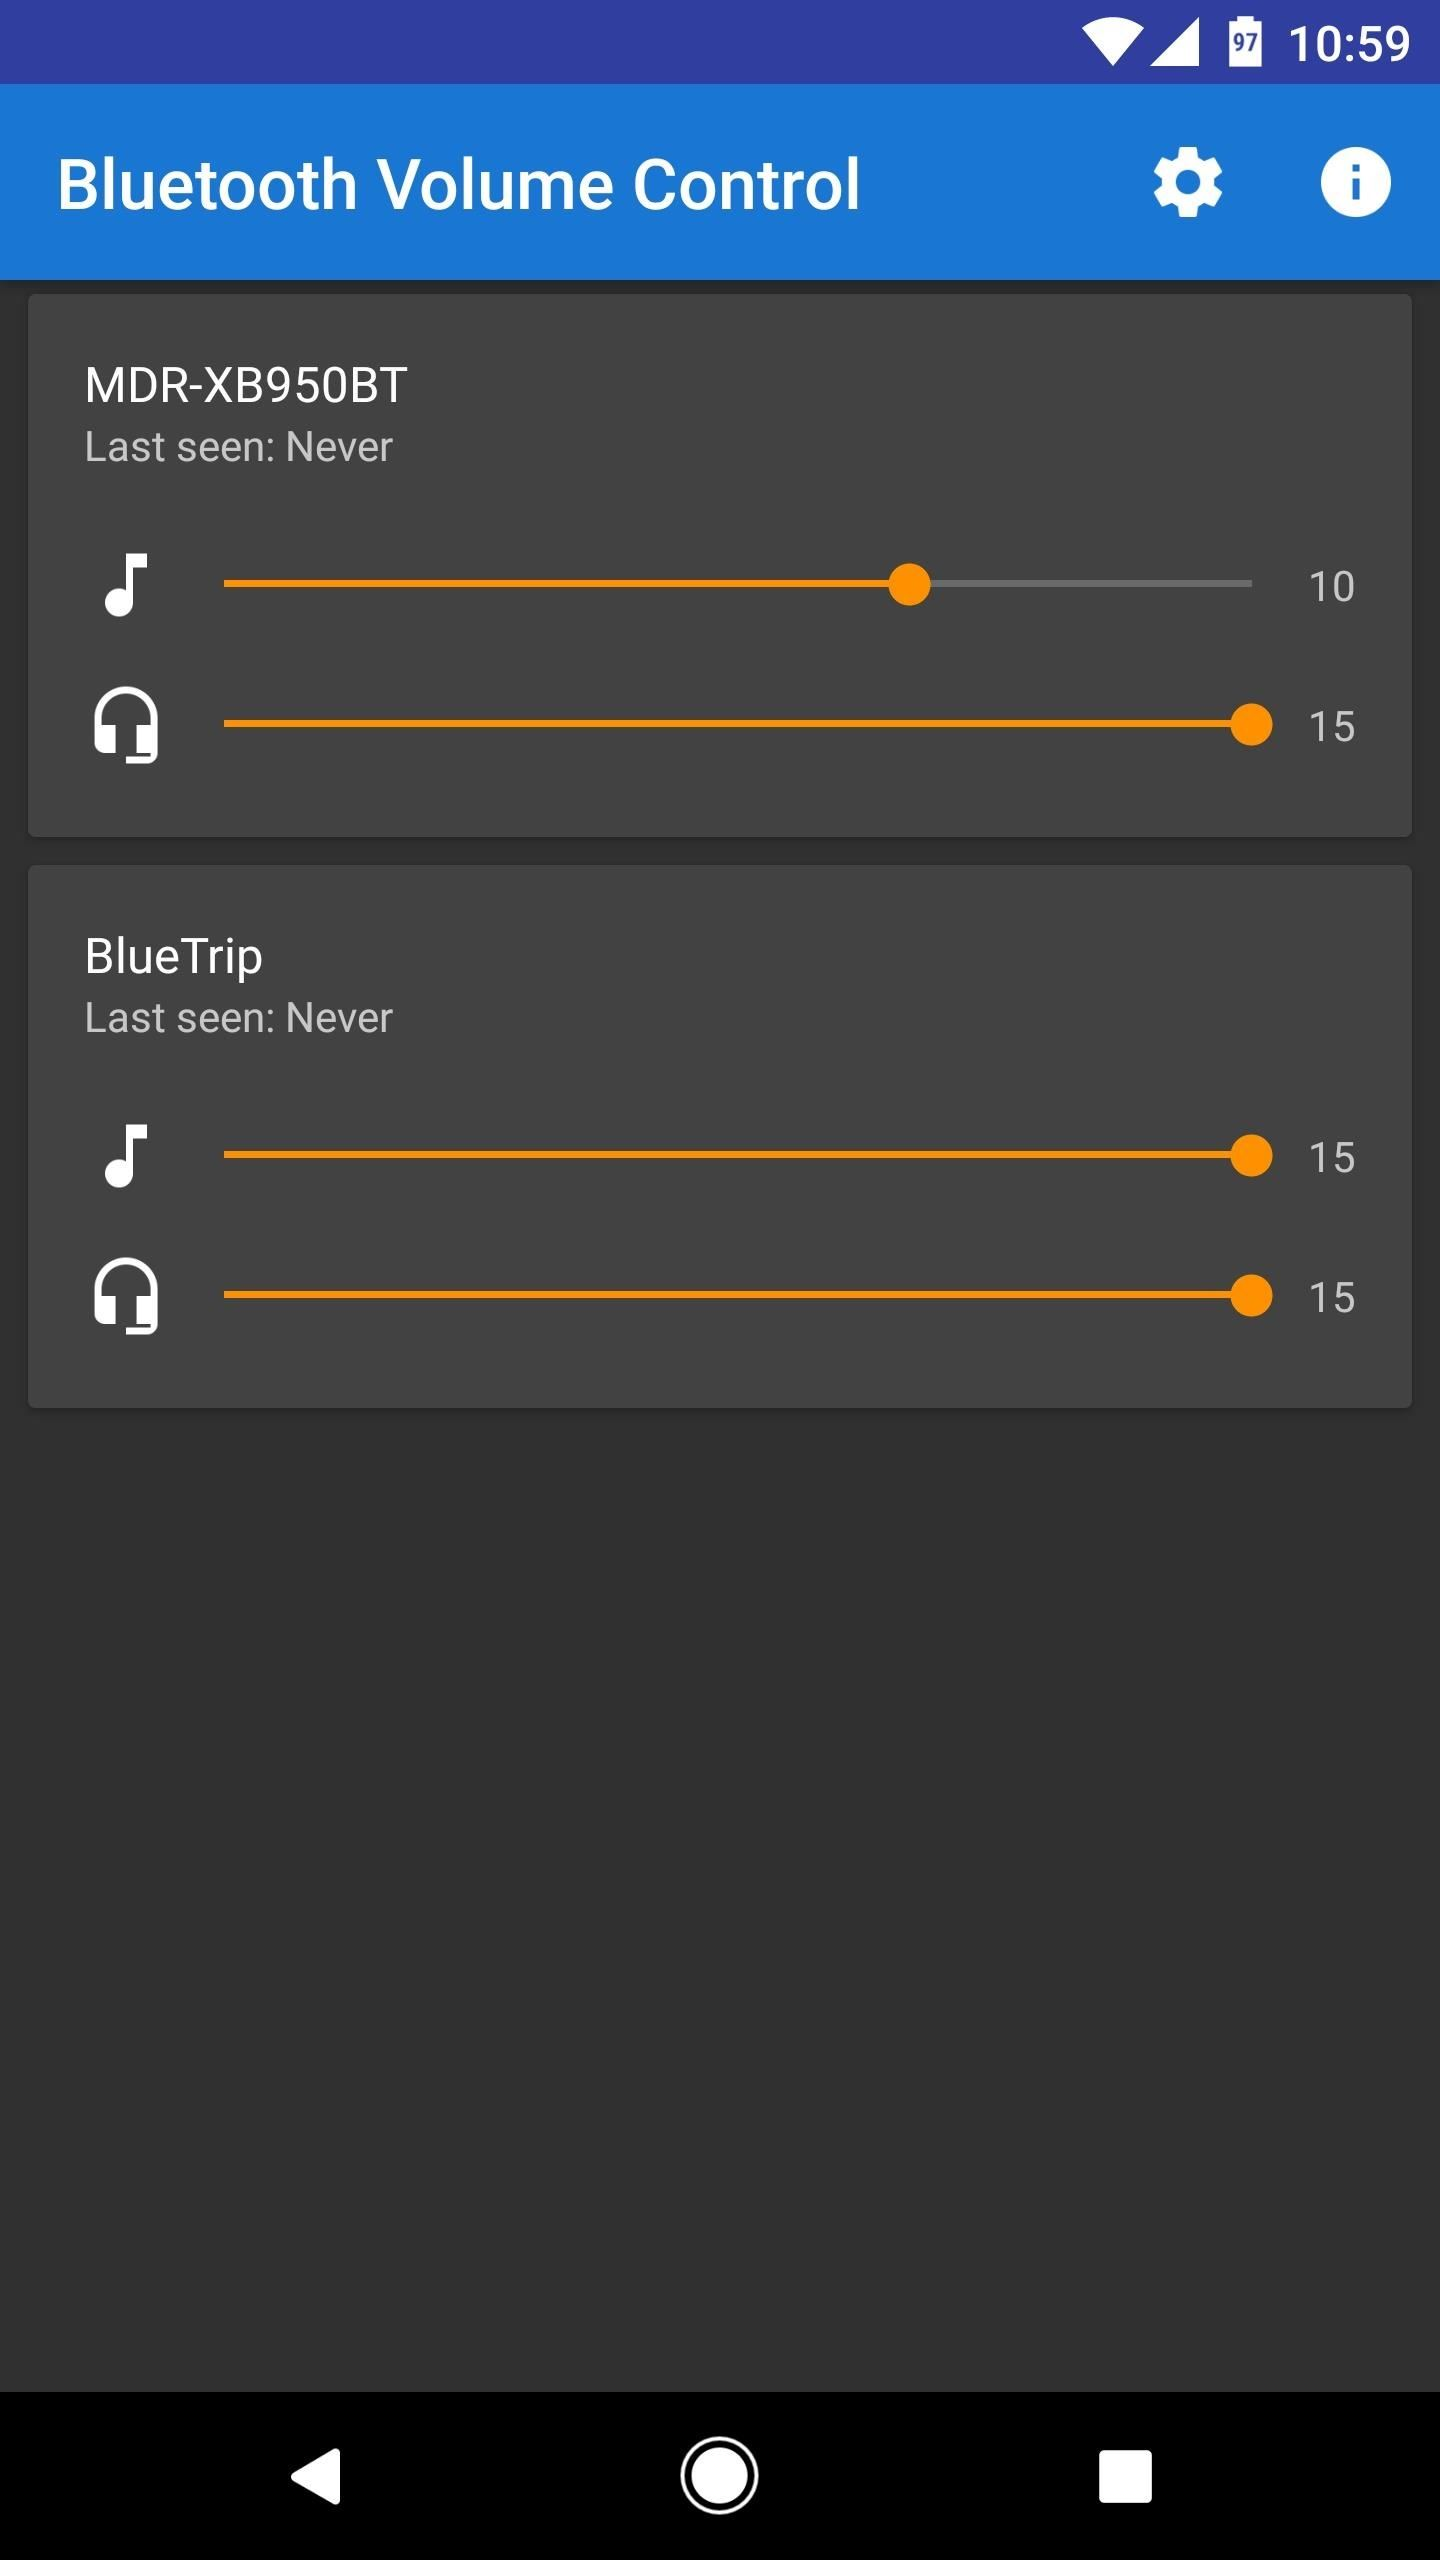 Set Default Volume Levels for Each of Your Bluetooth Accessories Individually